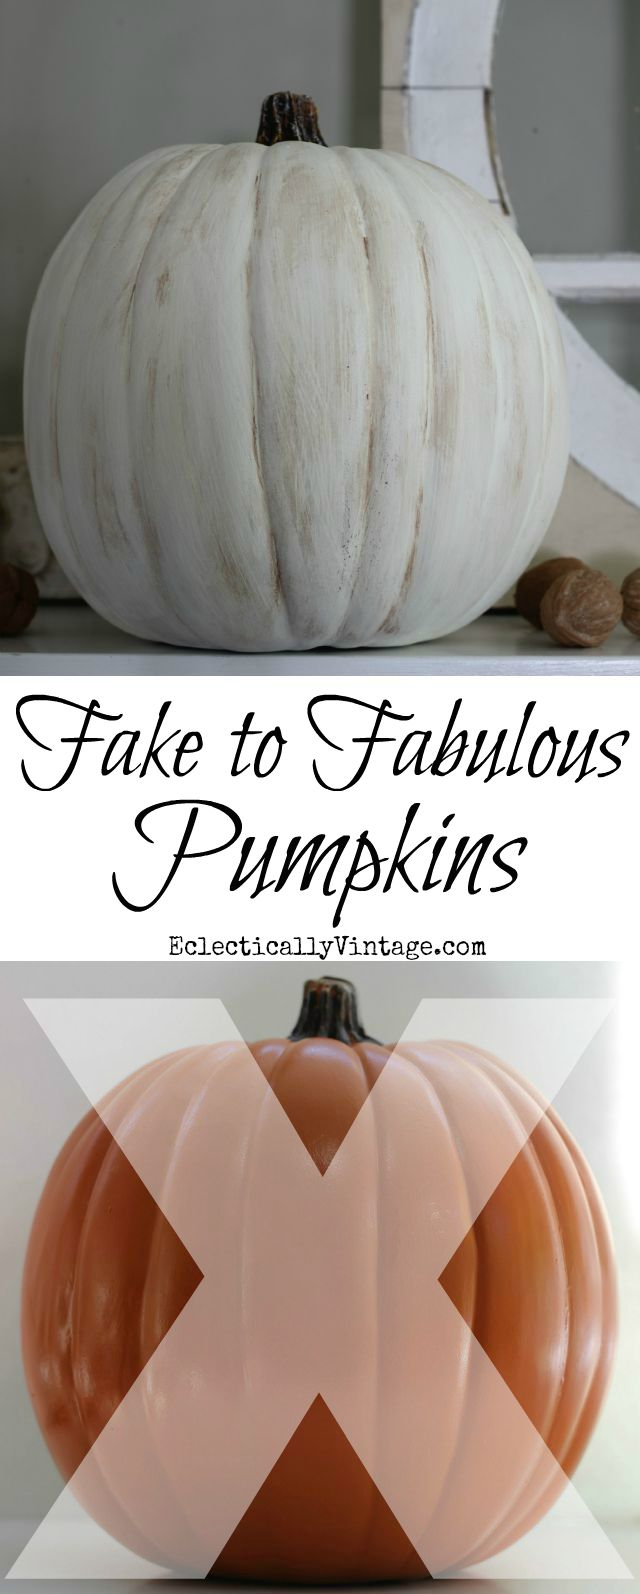 How to Make Plastic Pumpkins Look Realistic - in minutes! kellyelko.com